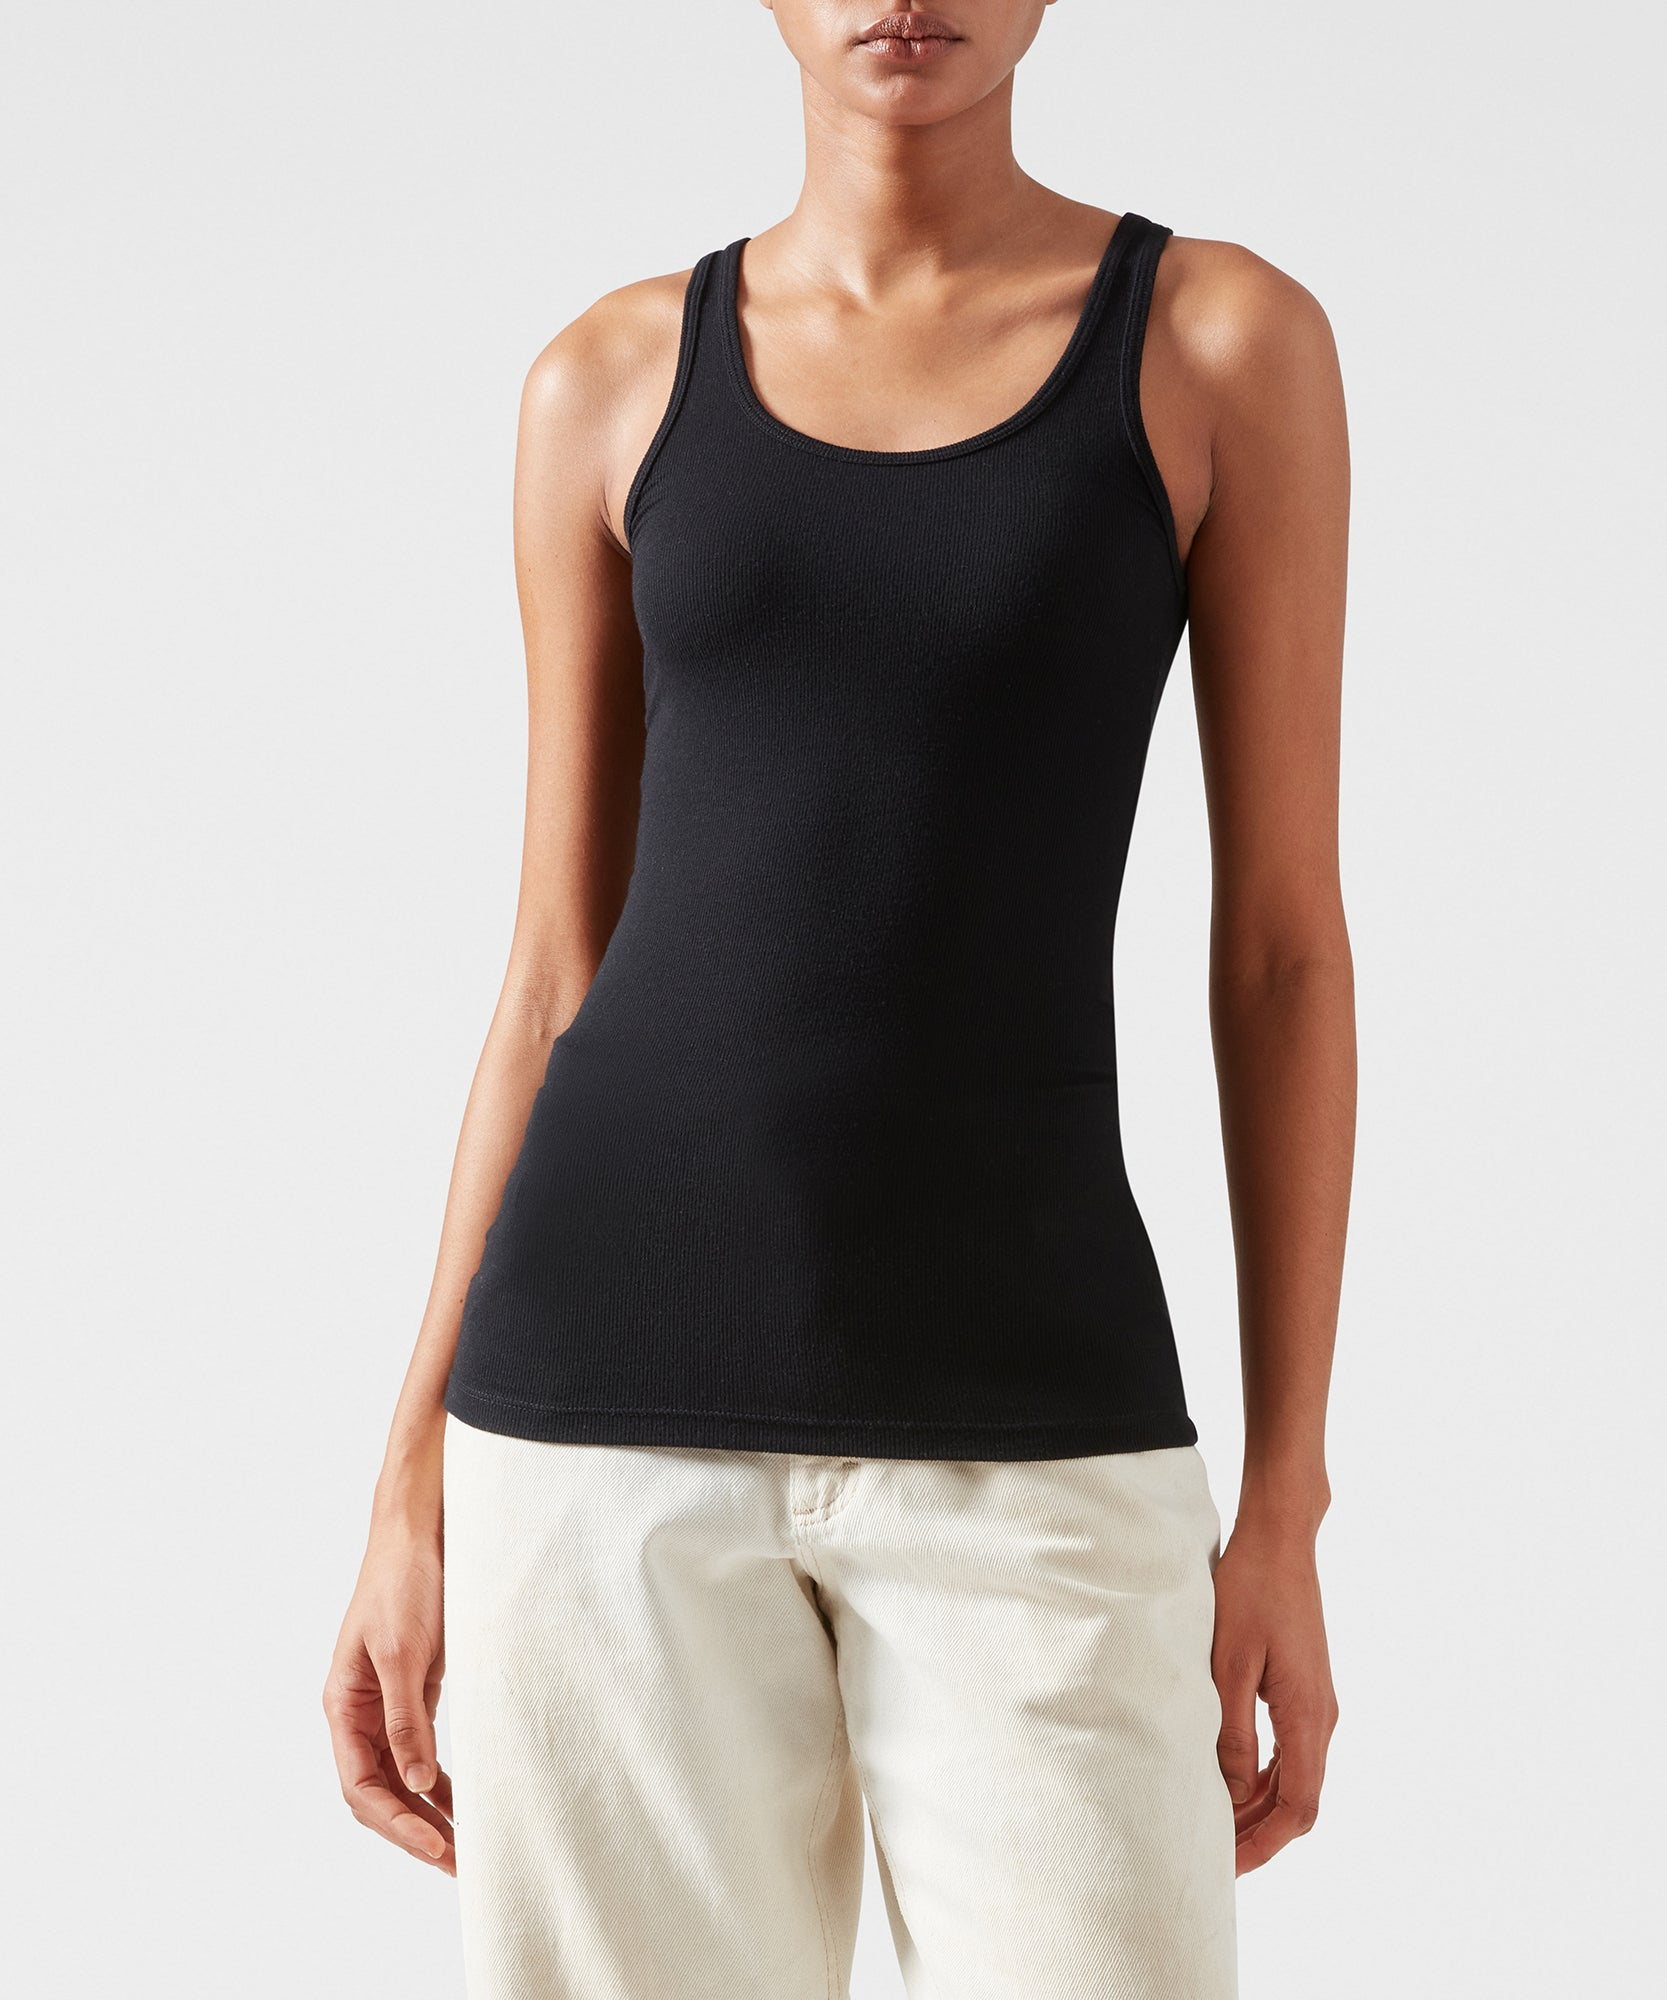 Black Modal Rib Boy Tank - Women's Luxe Ribbed Tank by ATM Anthony Thomas Melillo